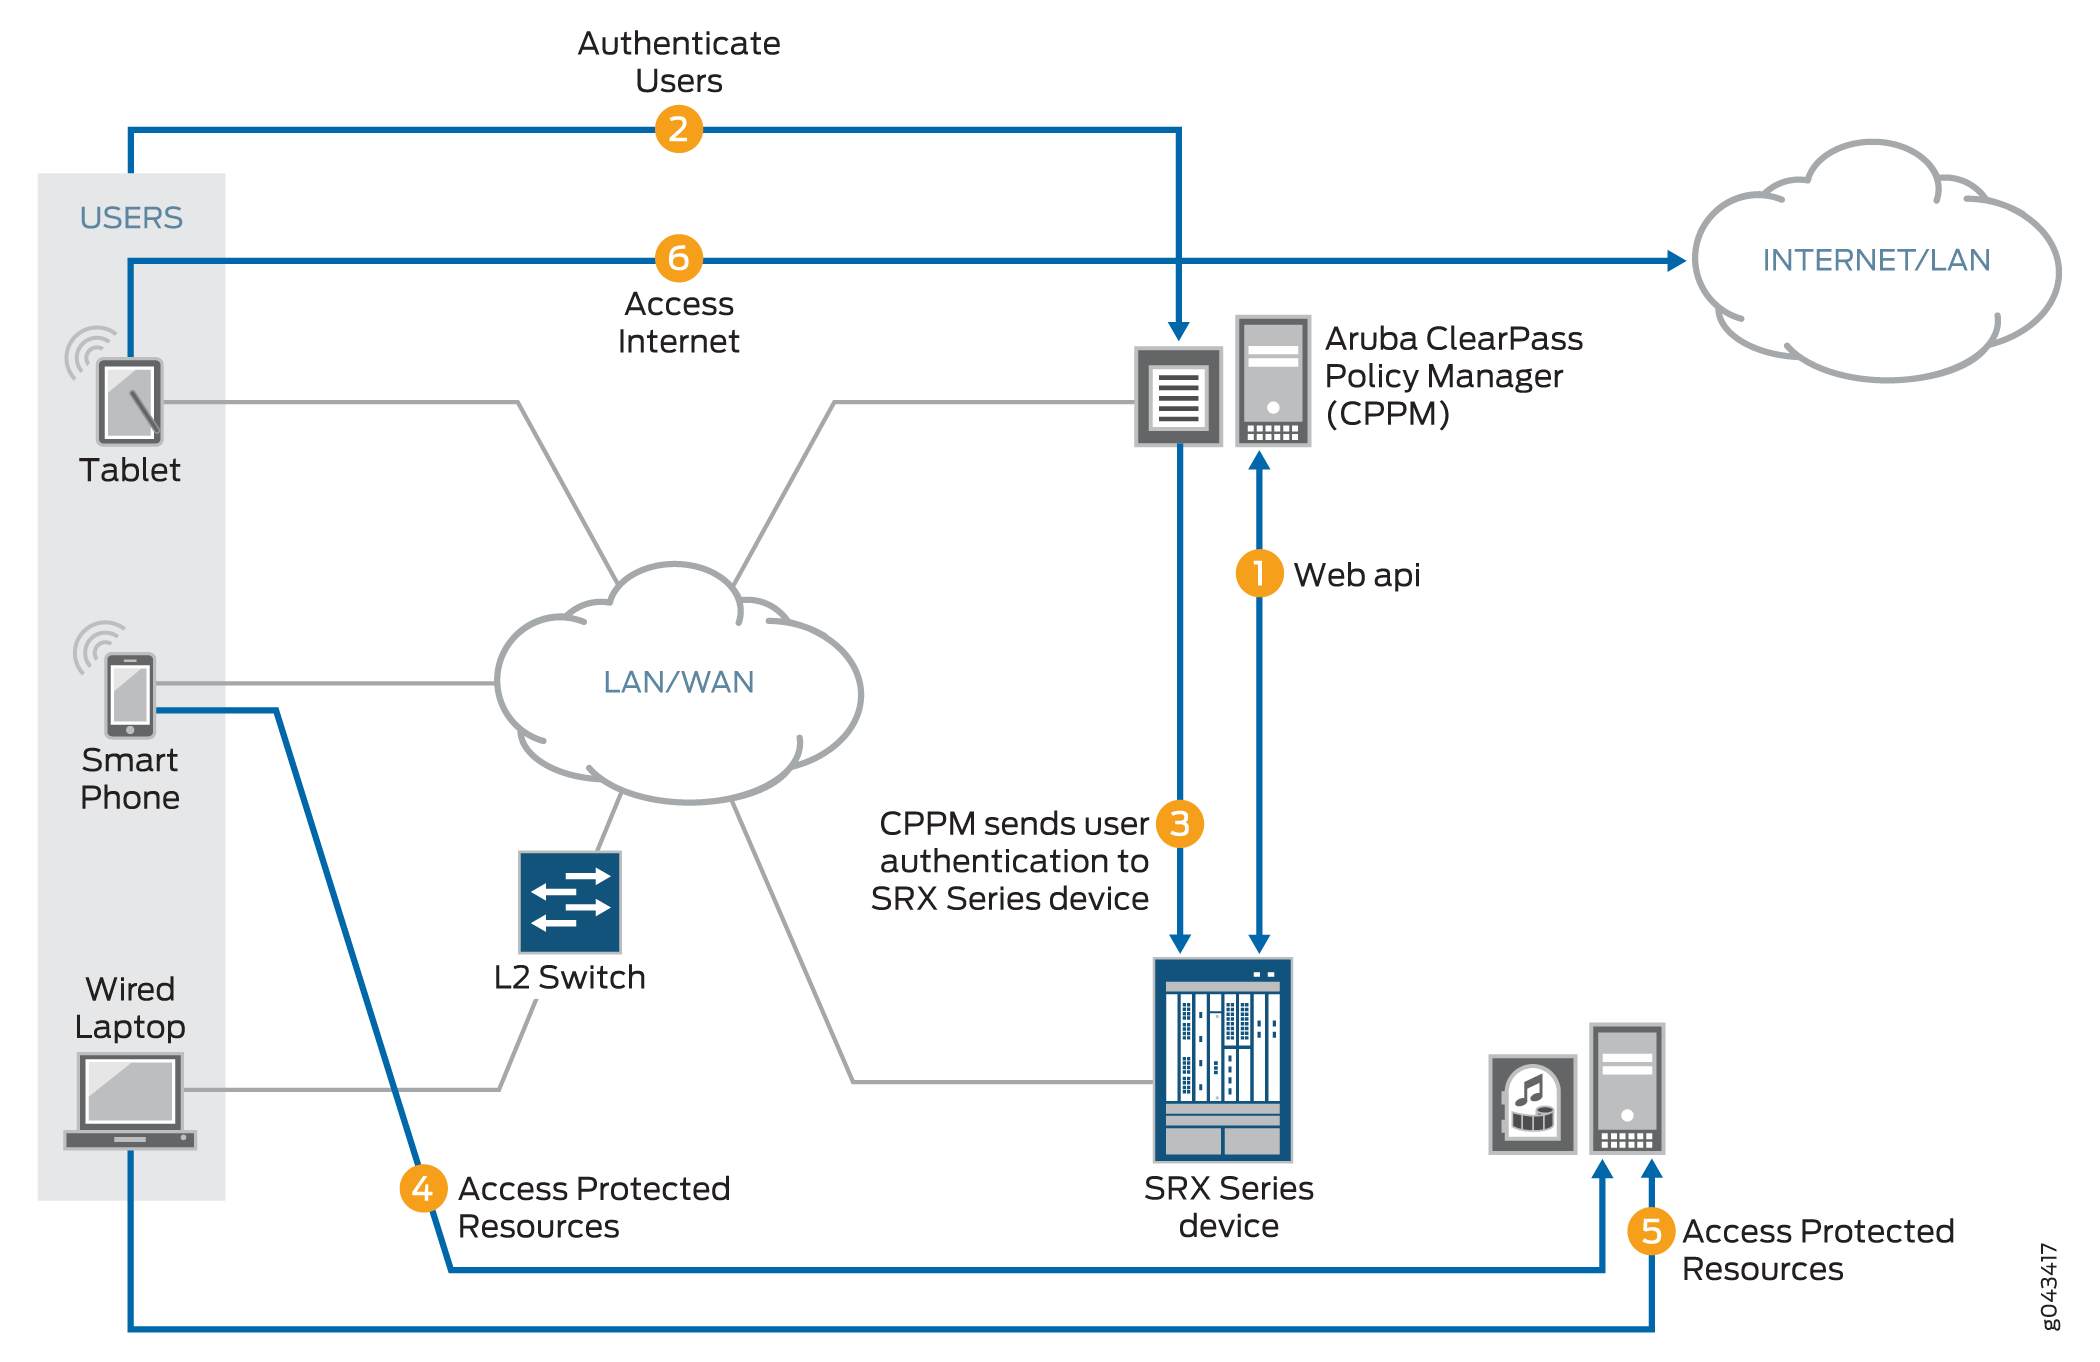 Communication between ClearPass and the Device, and User Authentication Process